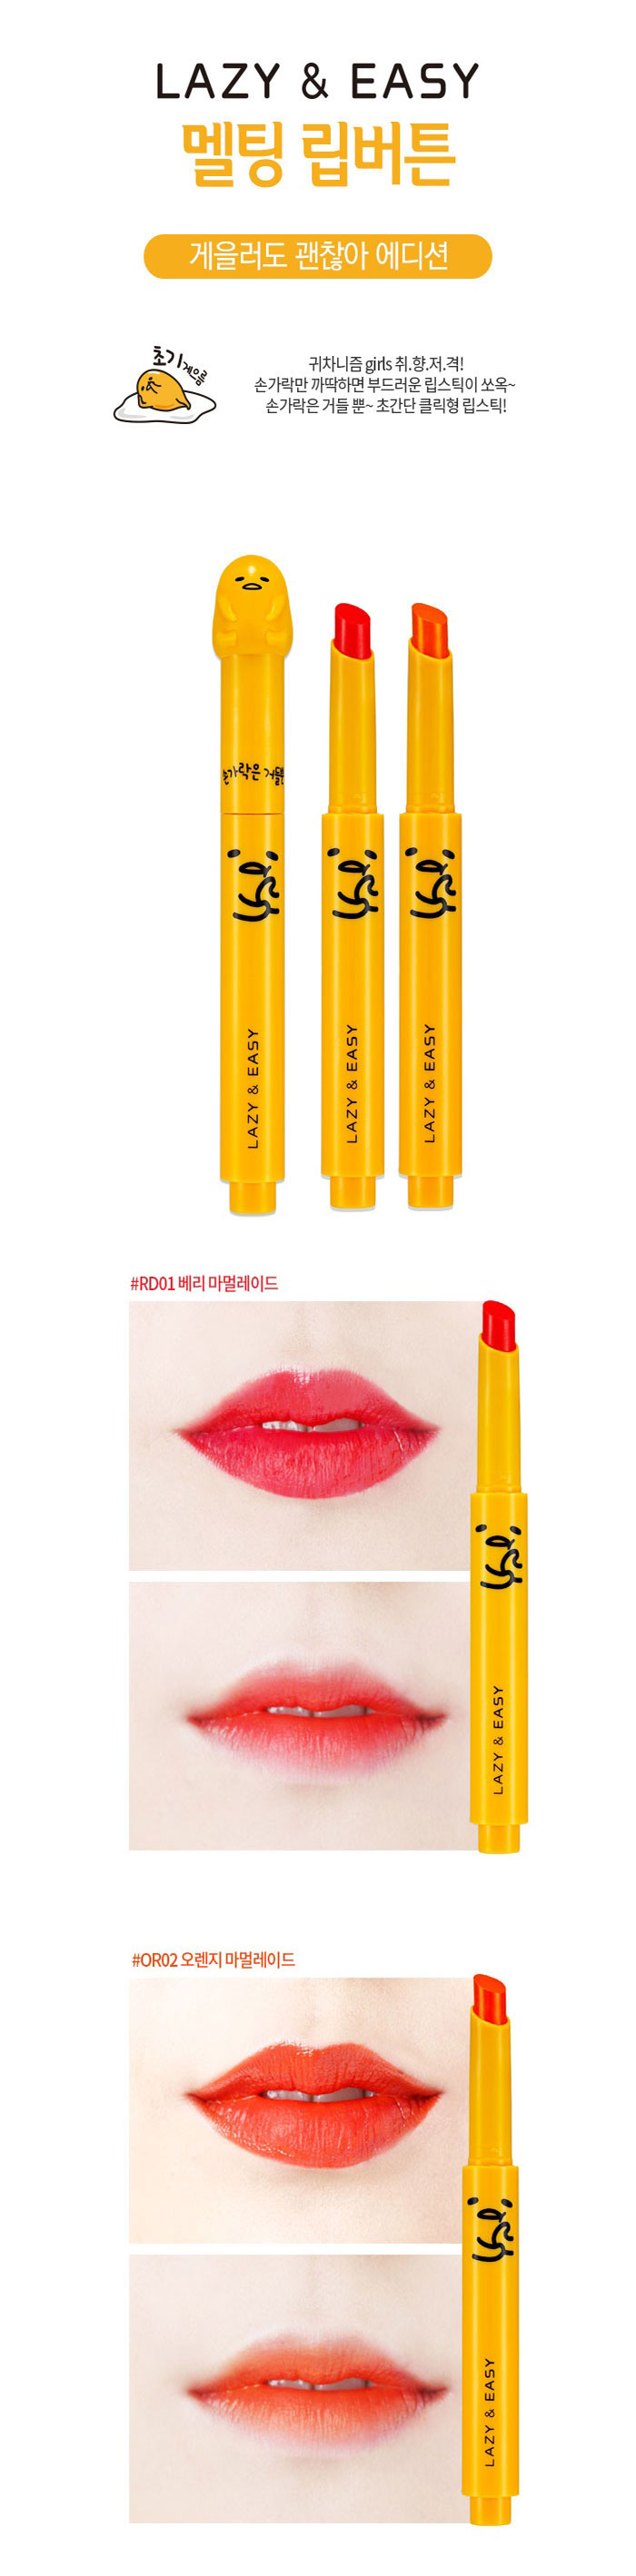 blog beauté holika holika lazy easy melting lip button